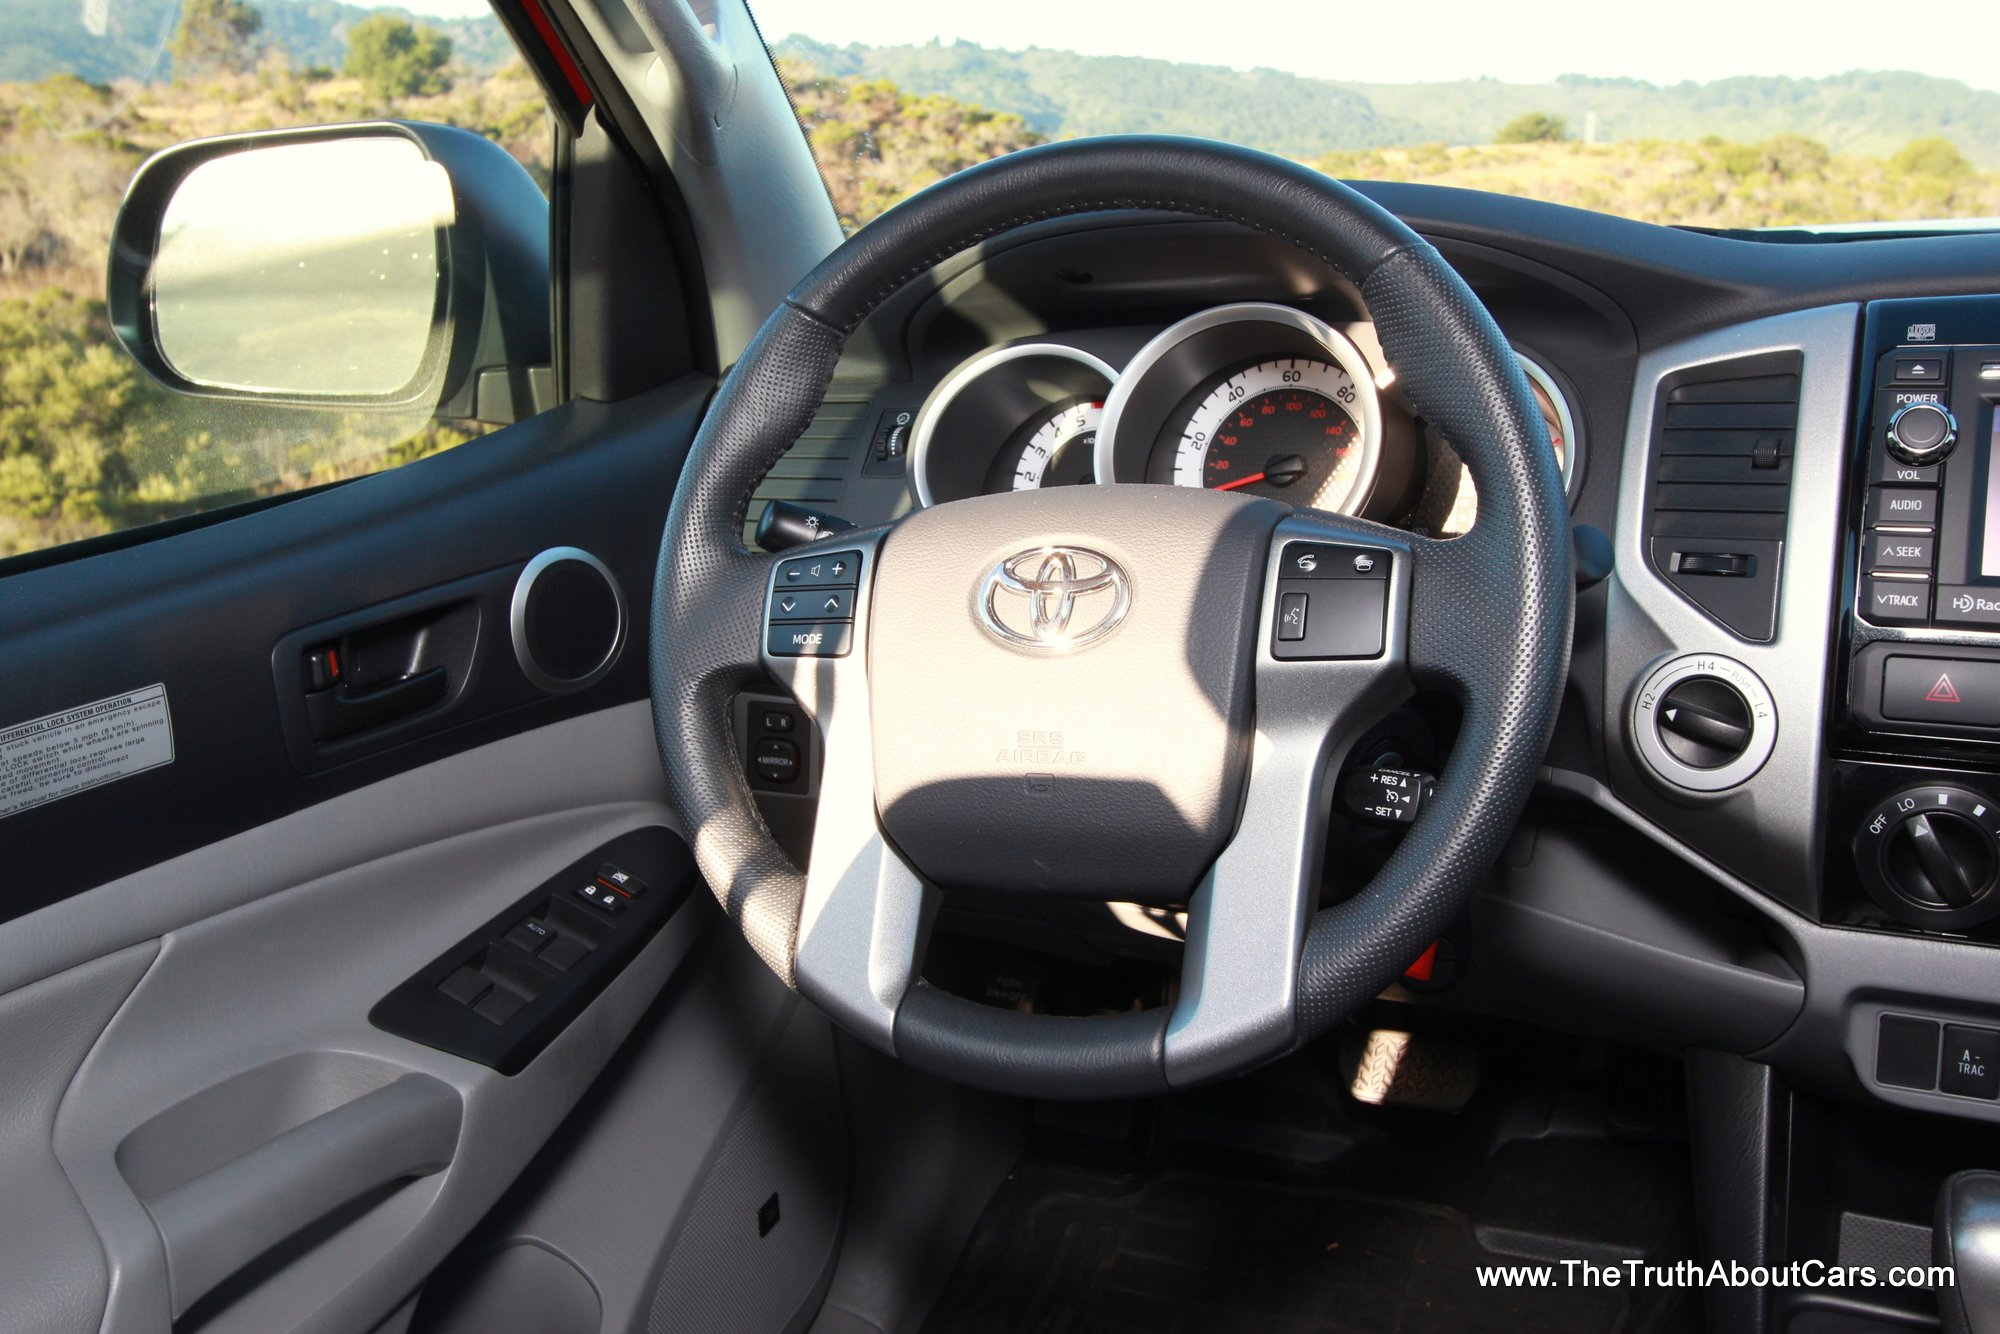 Custom Toyota Tacoma >> Review: 2012 Toyota Tacoma TRD T|X Baja Edition - The Truth About Cars